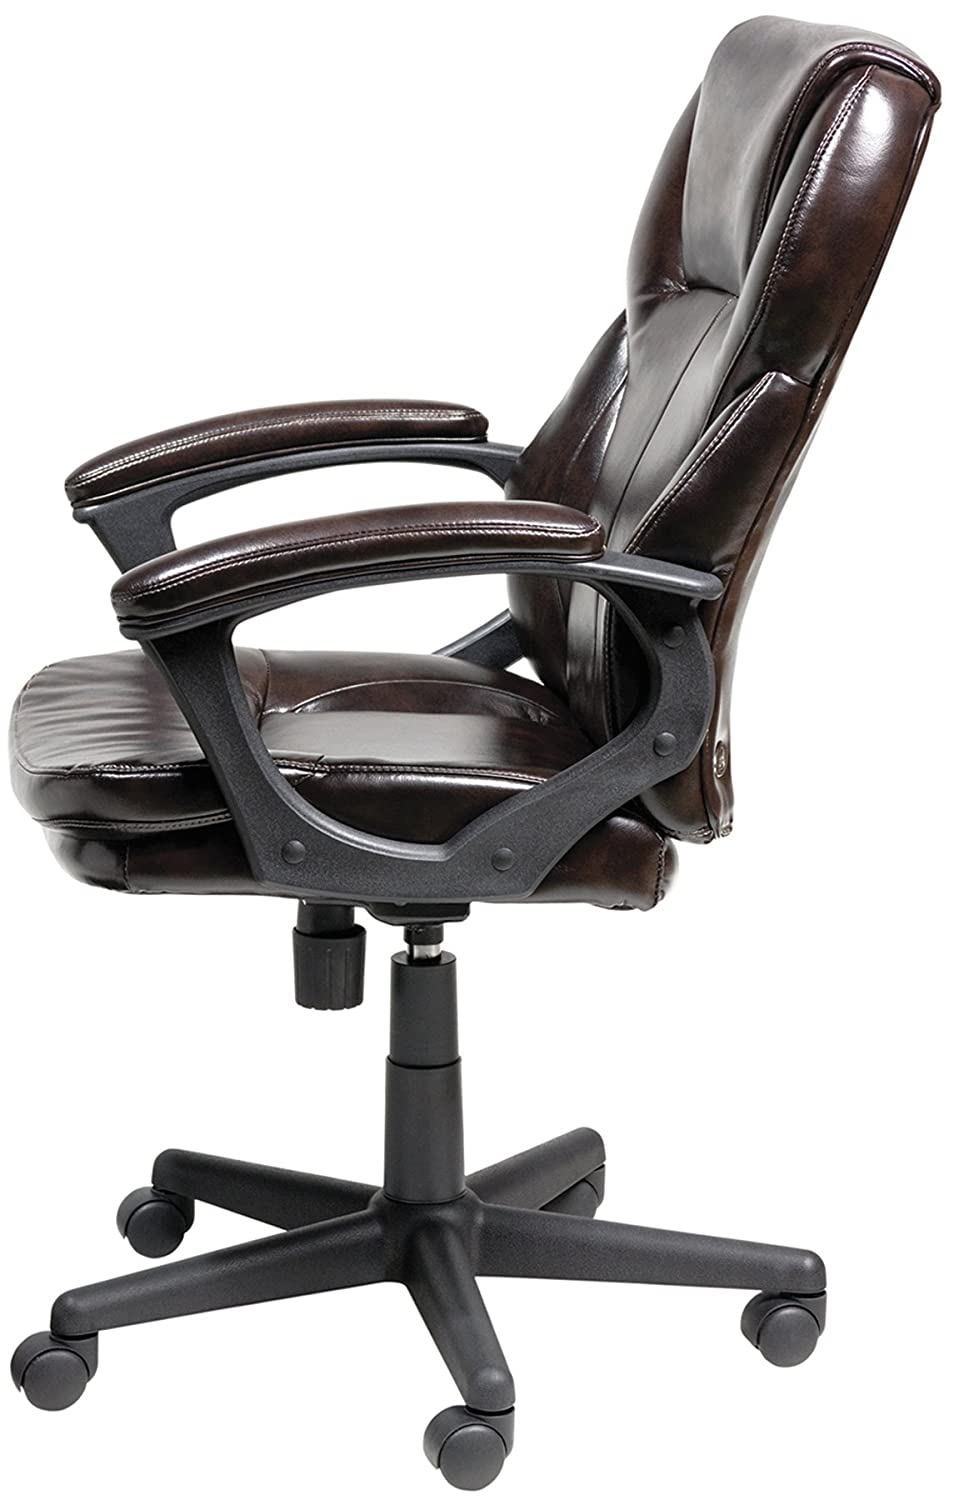 x for chairs within desk office sizing s serta sam design idea sams chair club